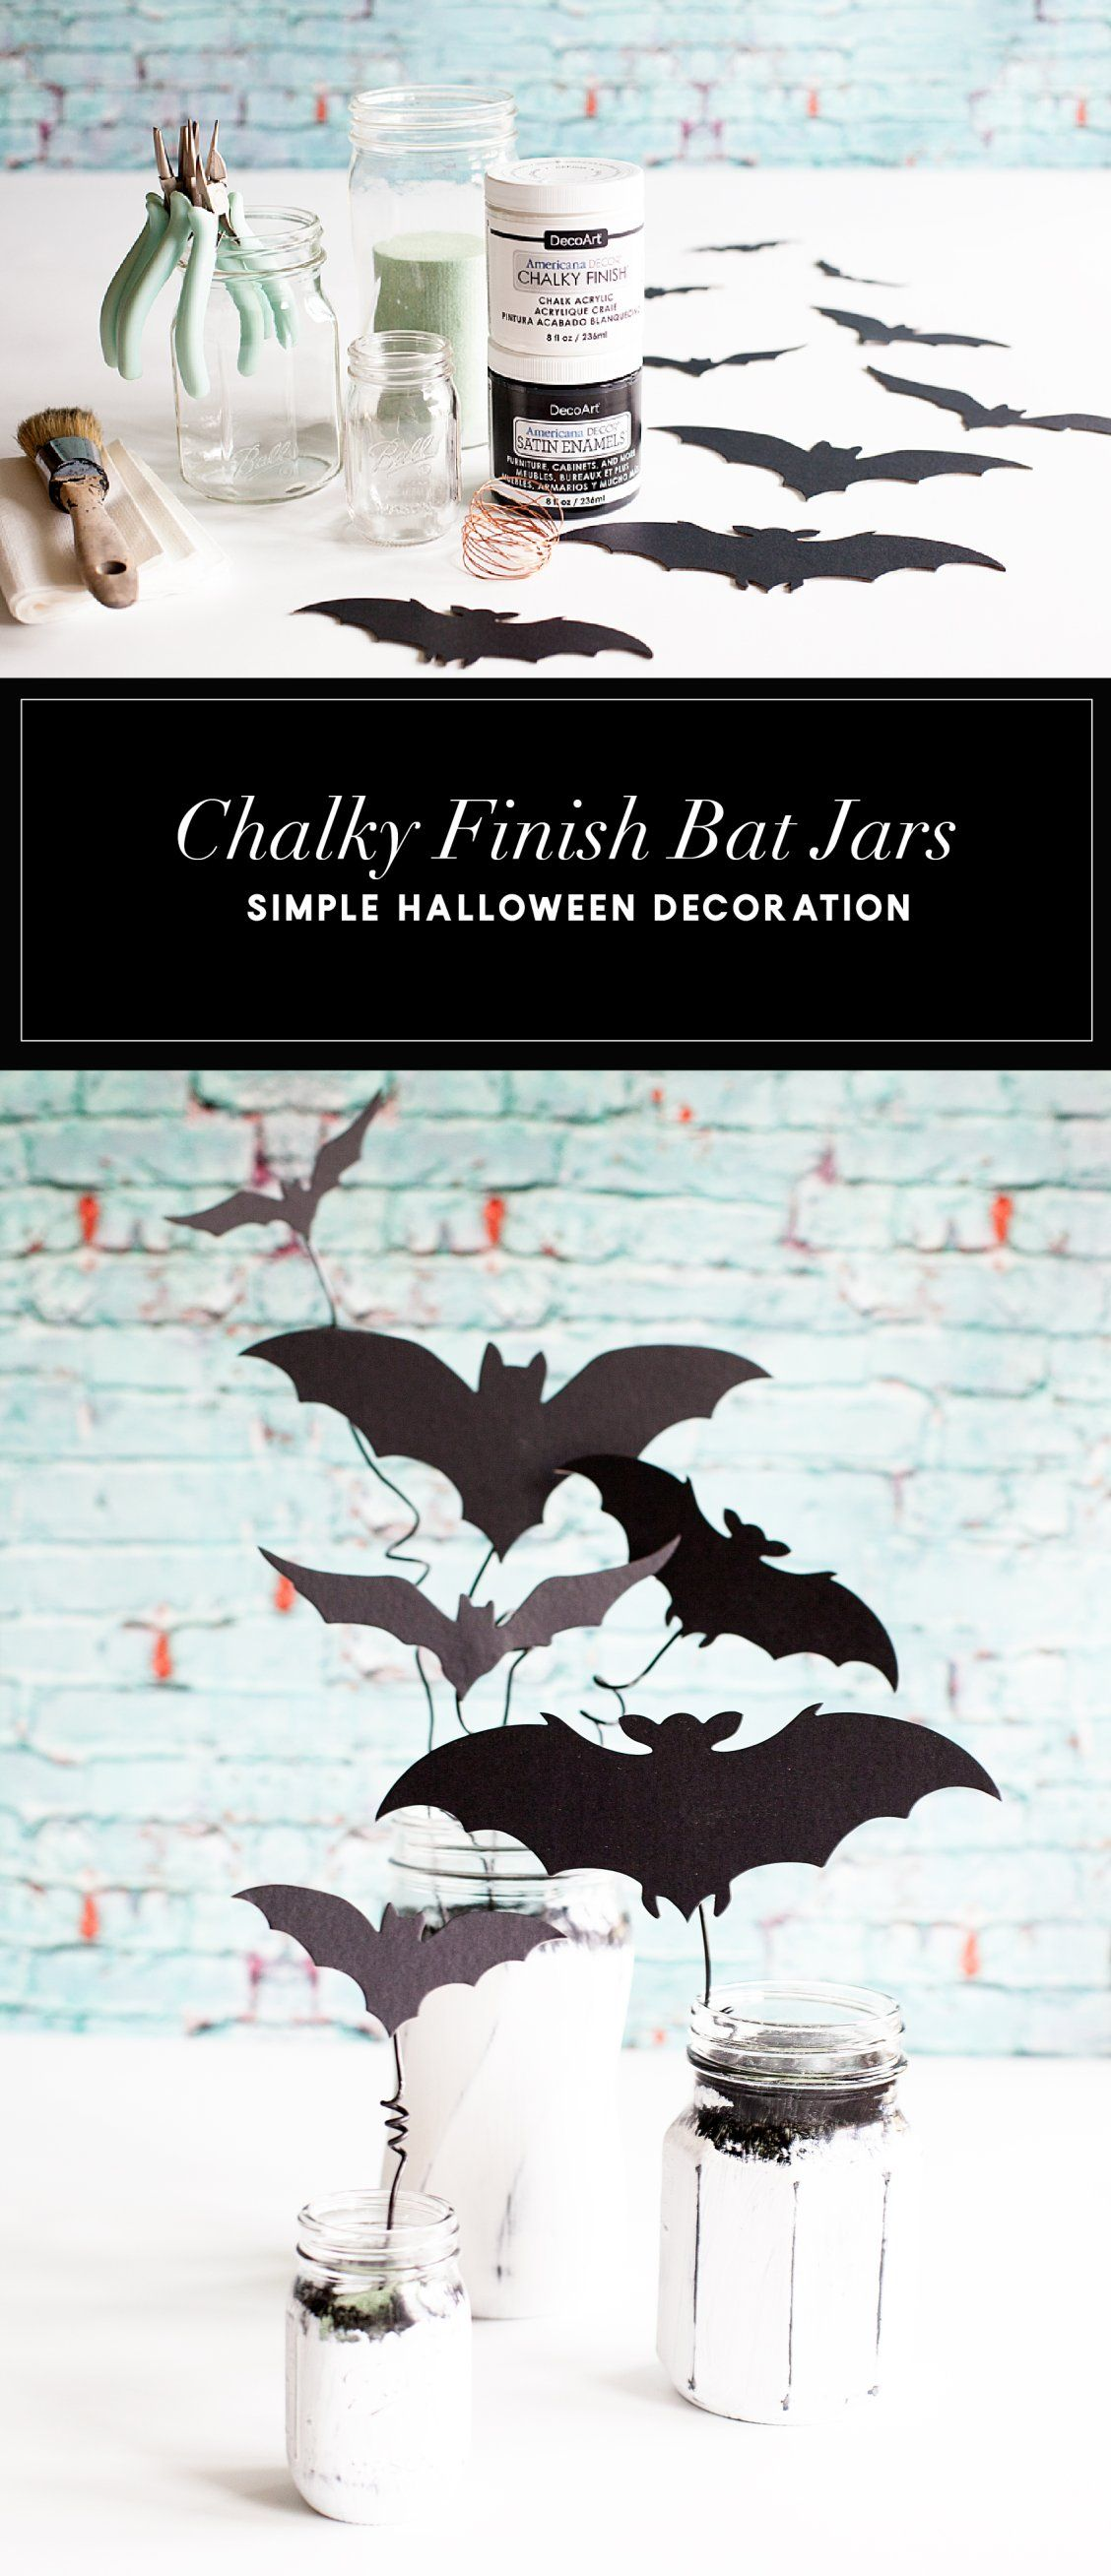 How To Make Diy Bat Jars